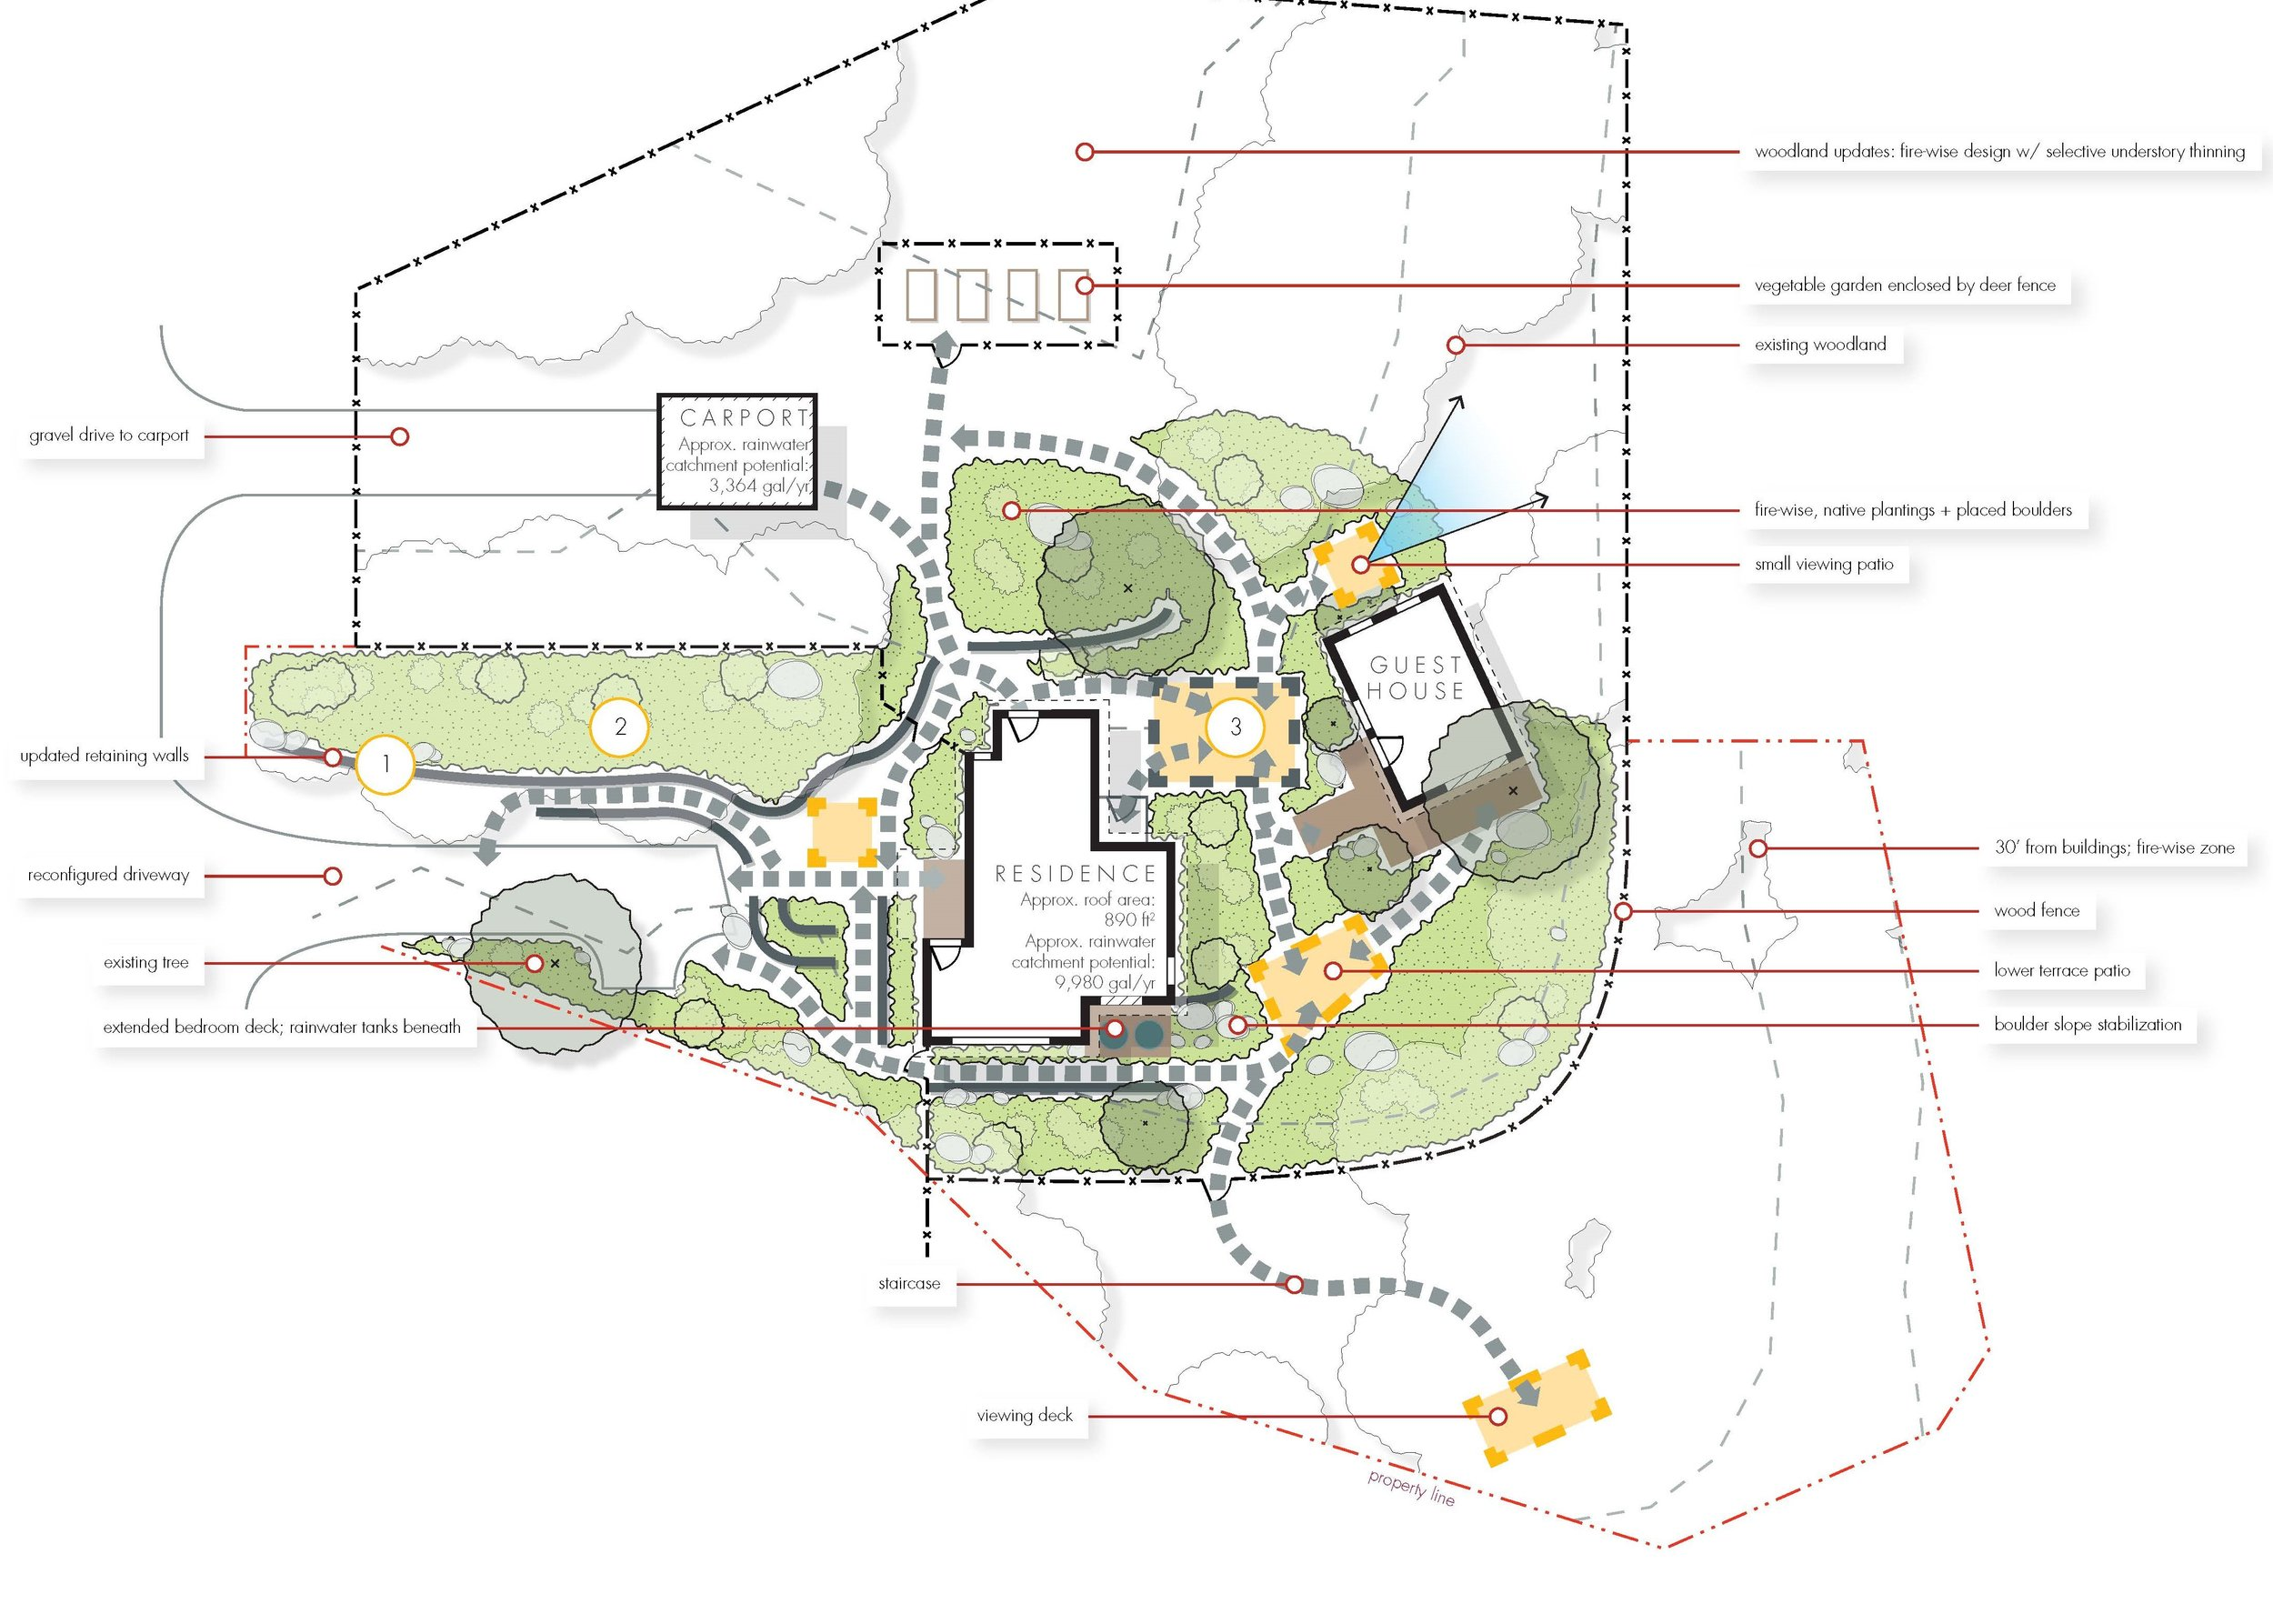 hight resolution of conceptual design site planning landscape architecture residential example nbsp